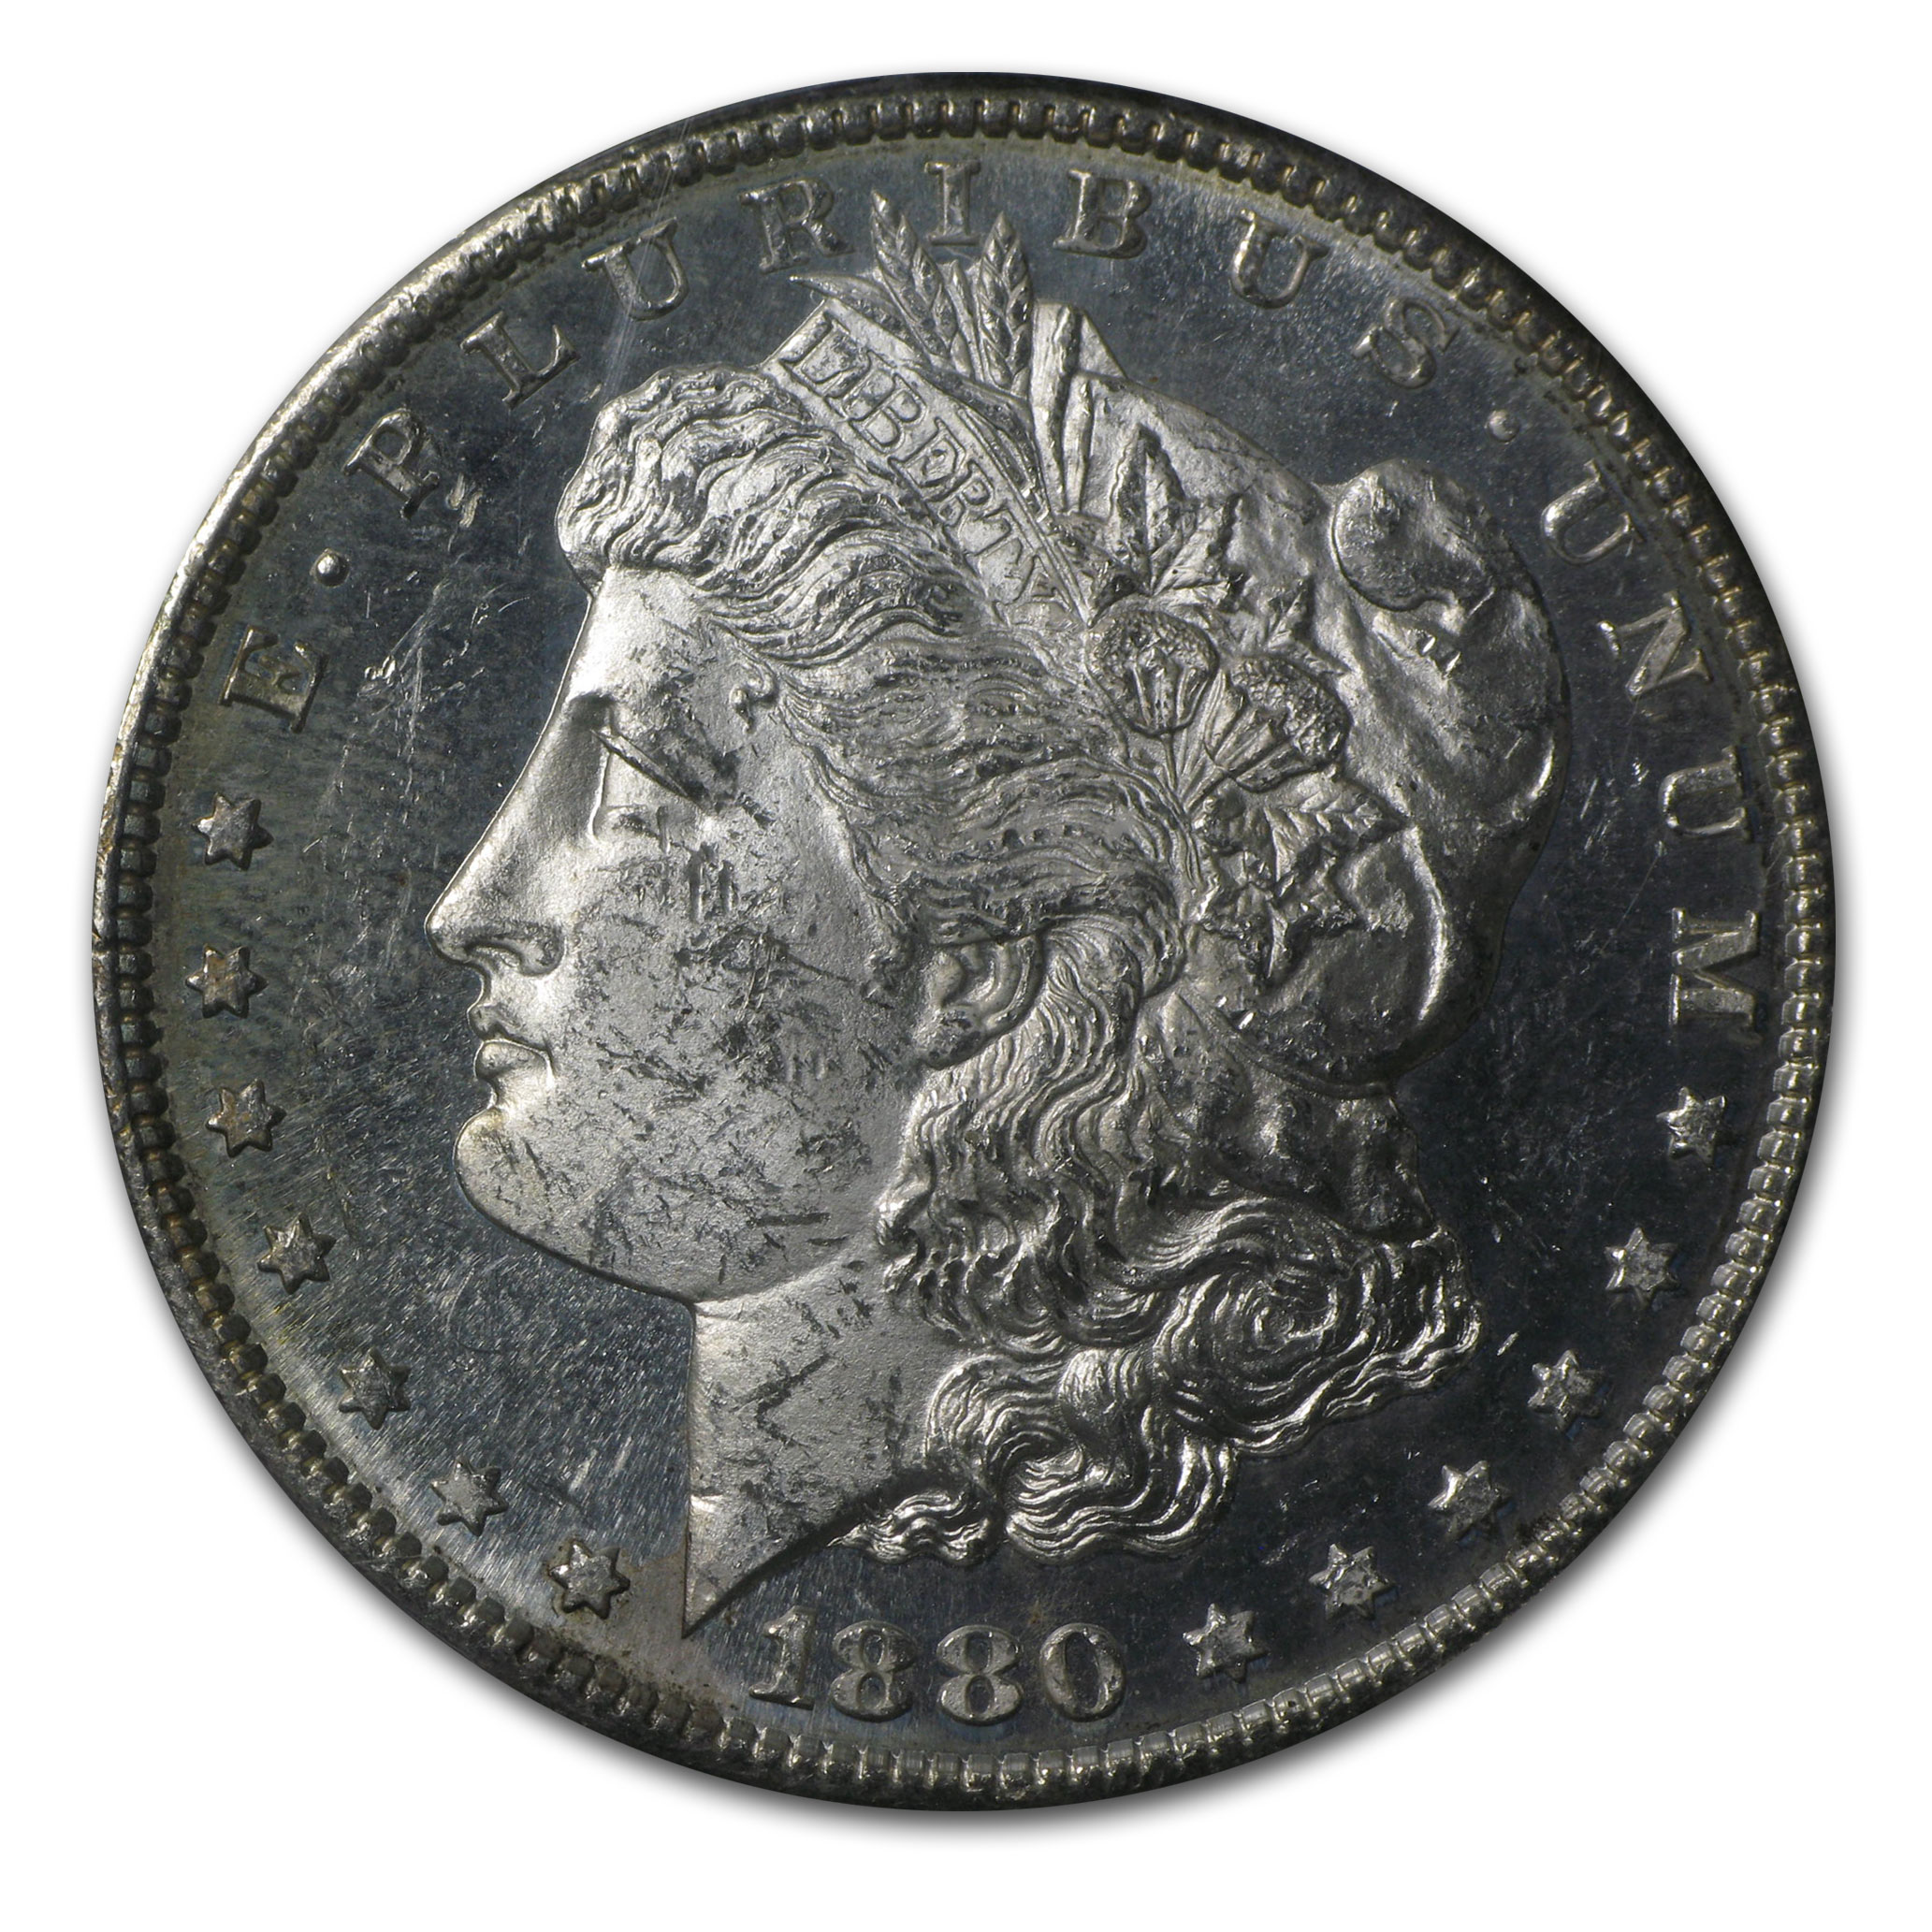 1880-S Morgan Dollar MS-62 PL Proof Like PCGS (Beautifully Toned)